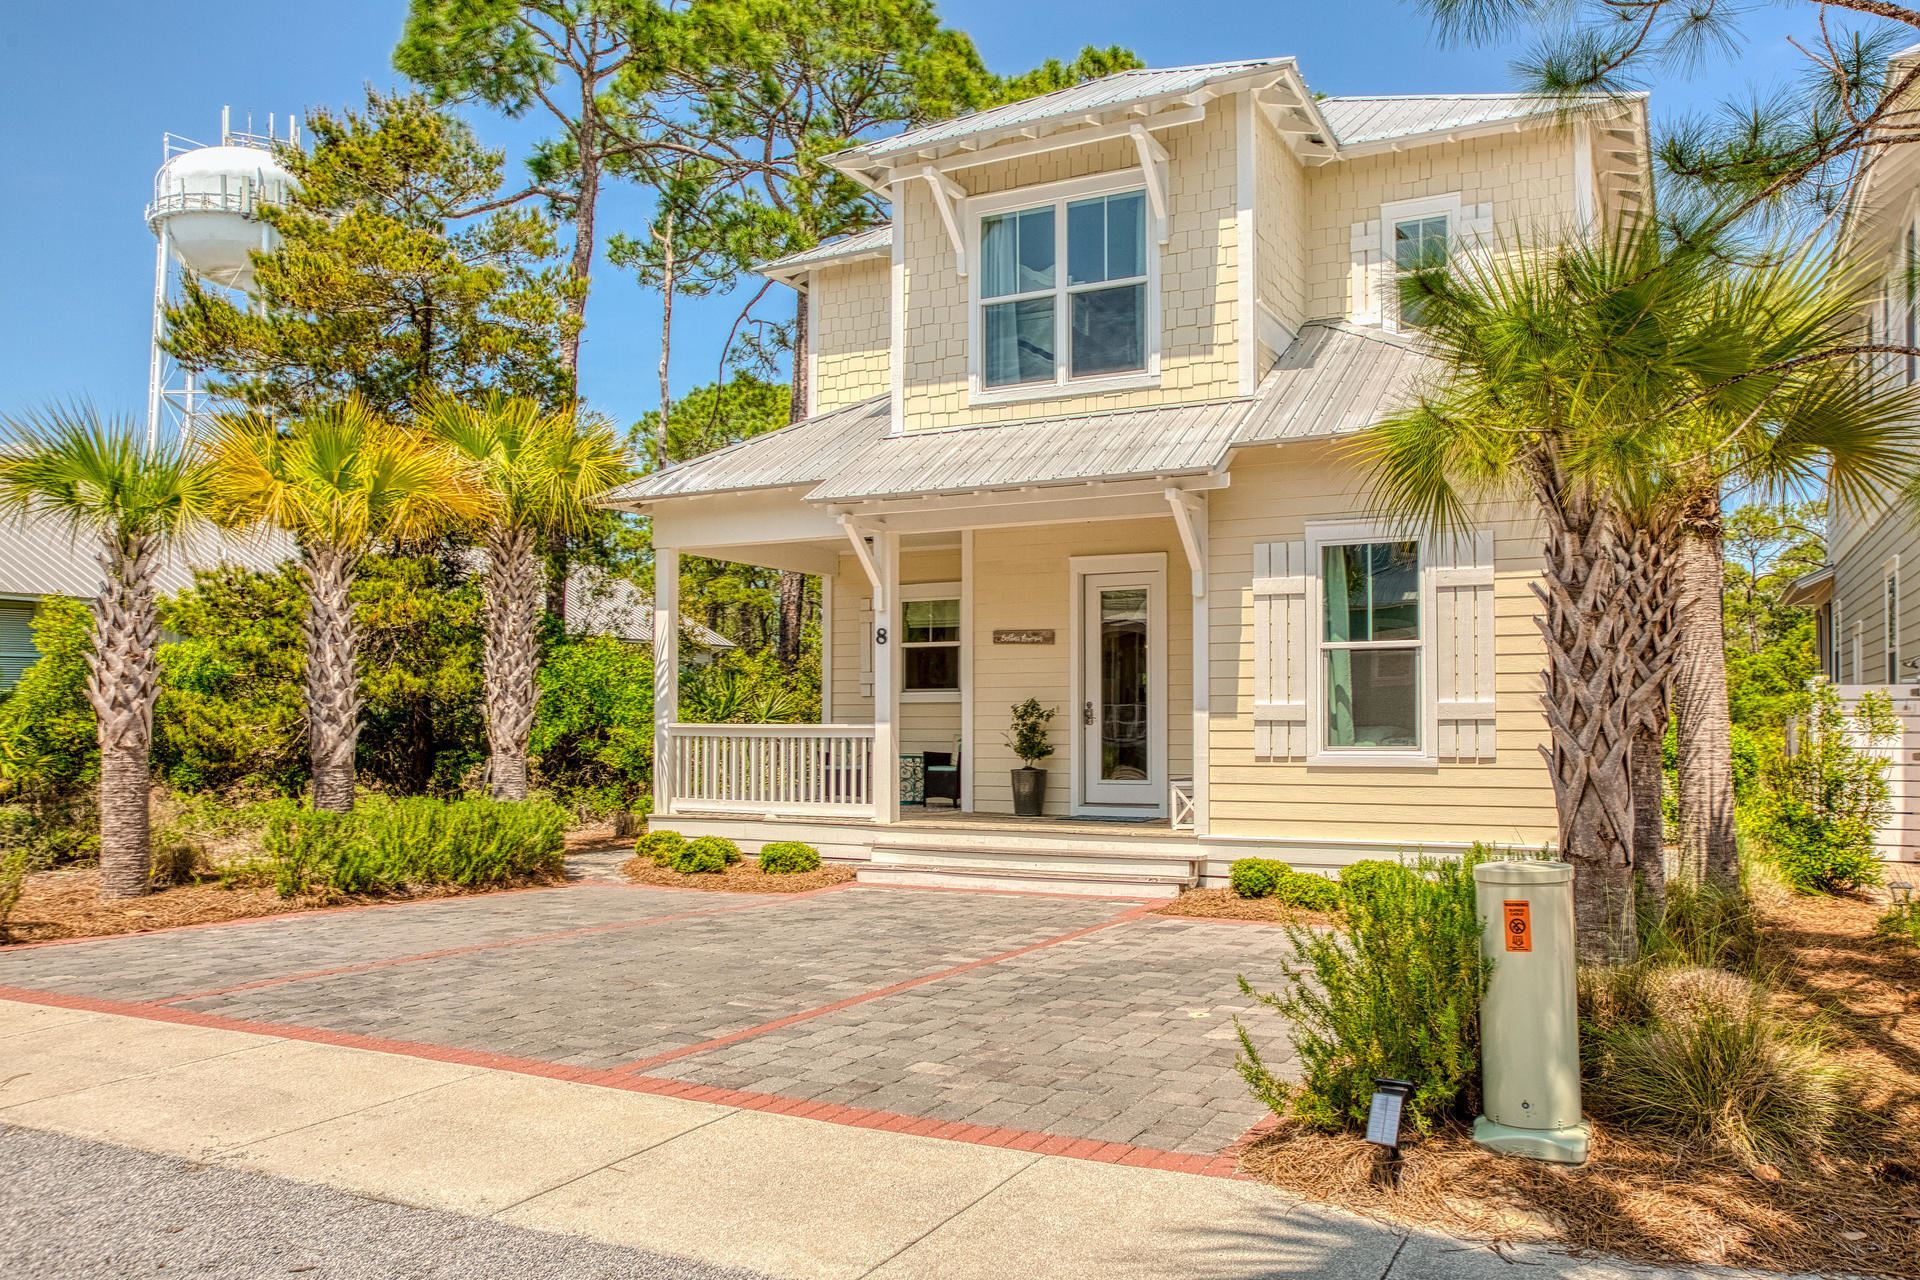 Property Image Of 8 W Endless Summer Way In Panama City Beach, Fl